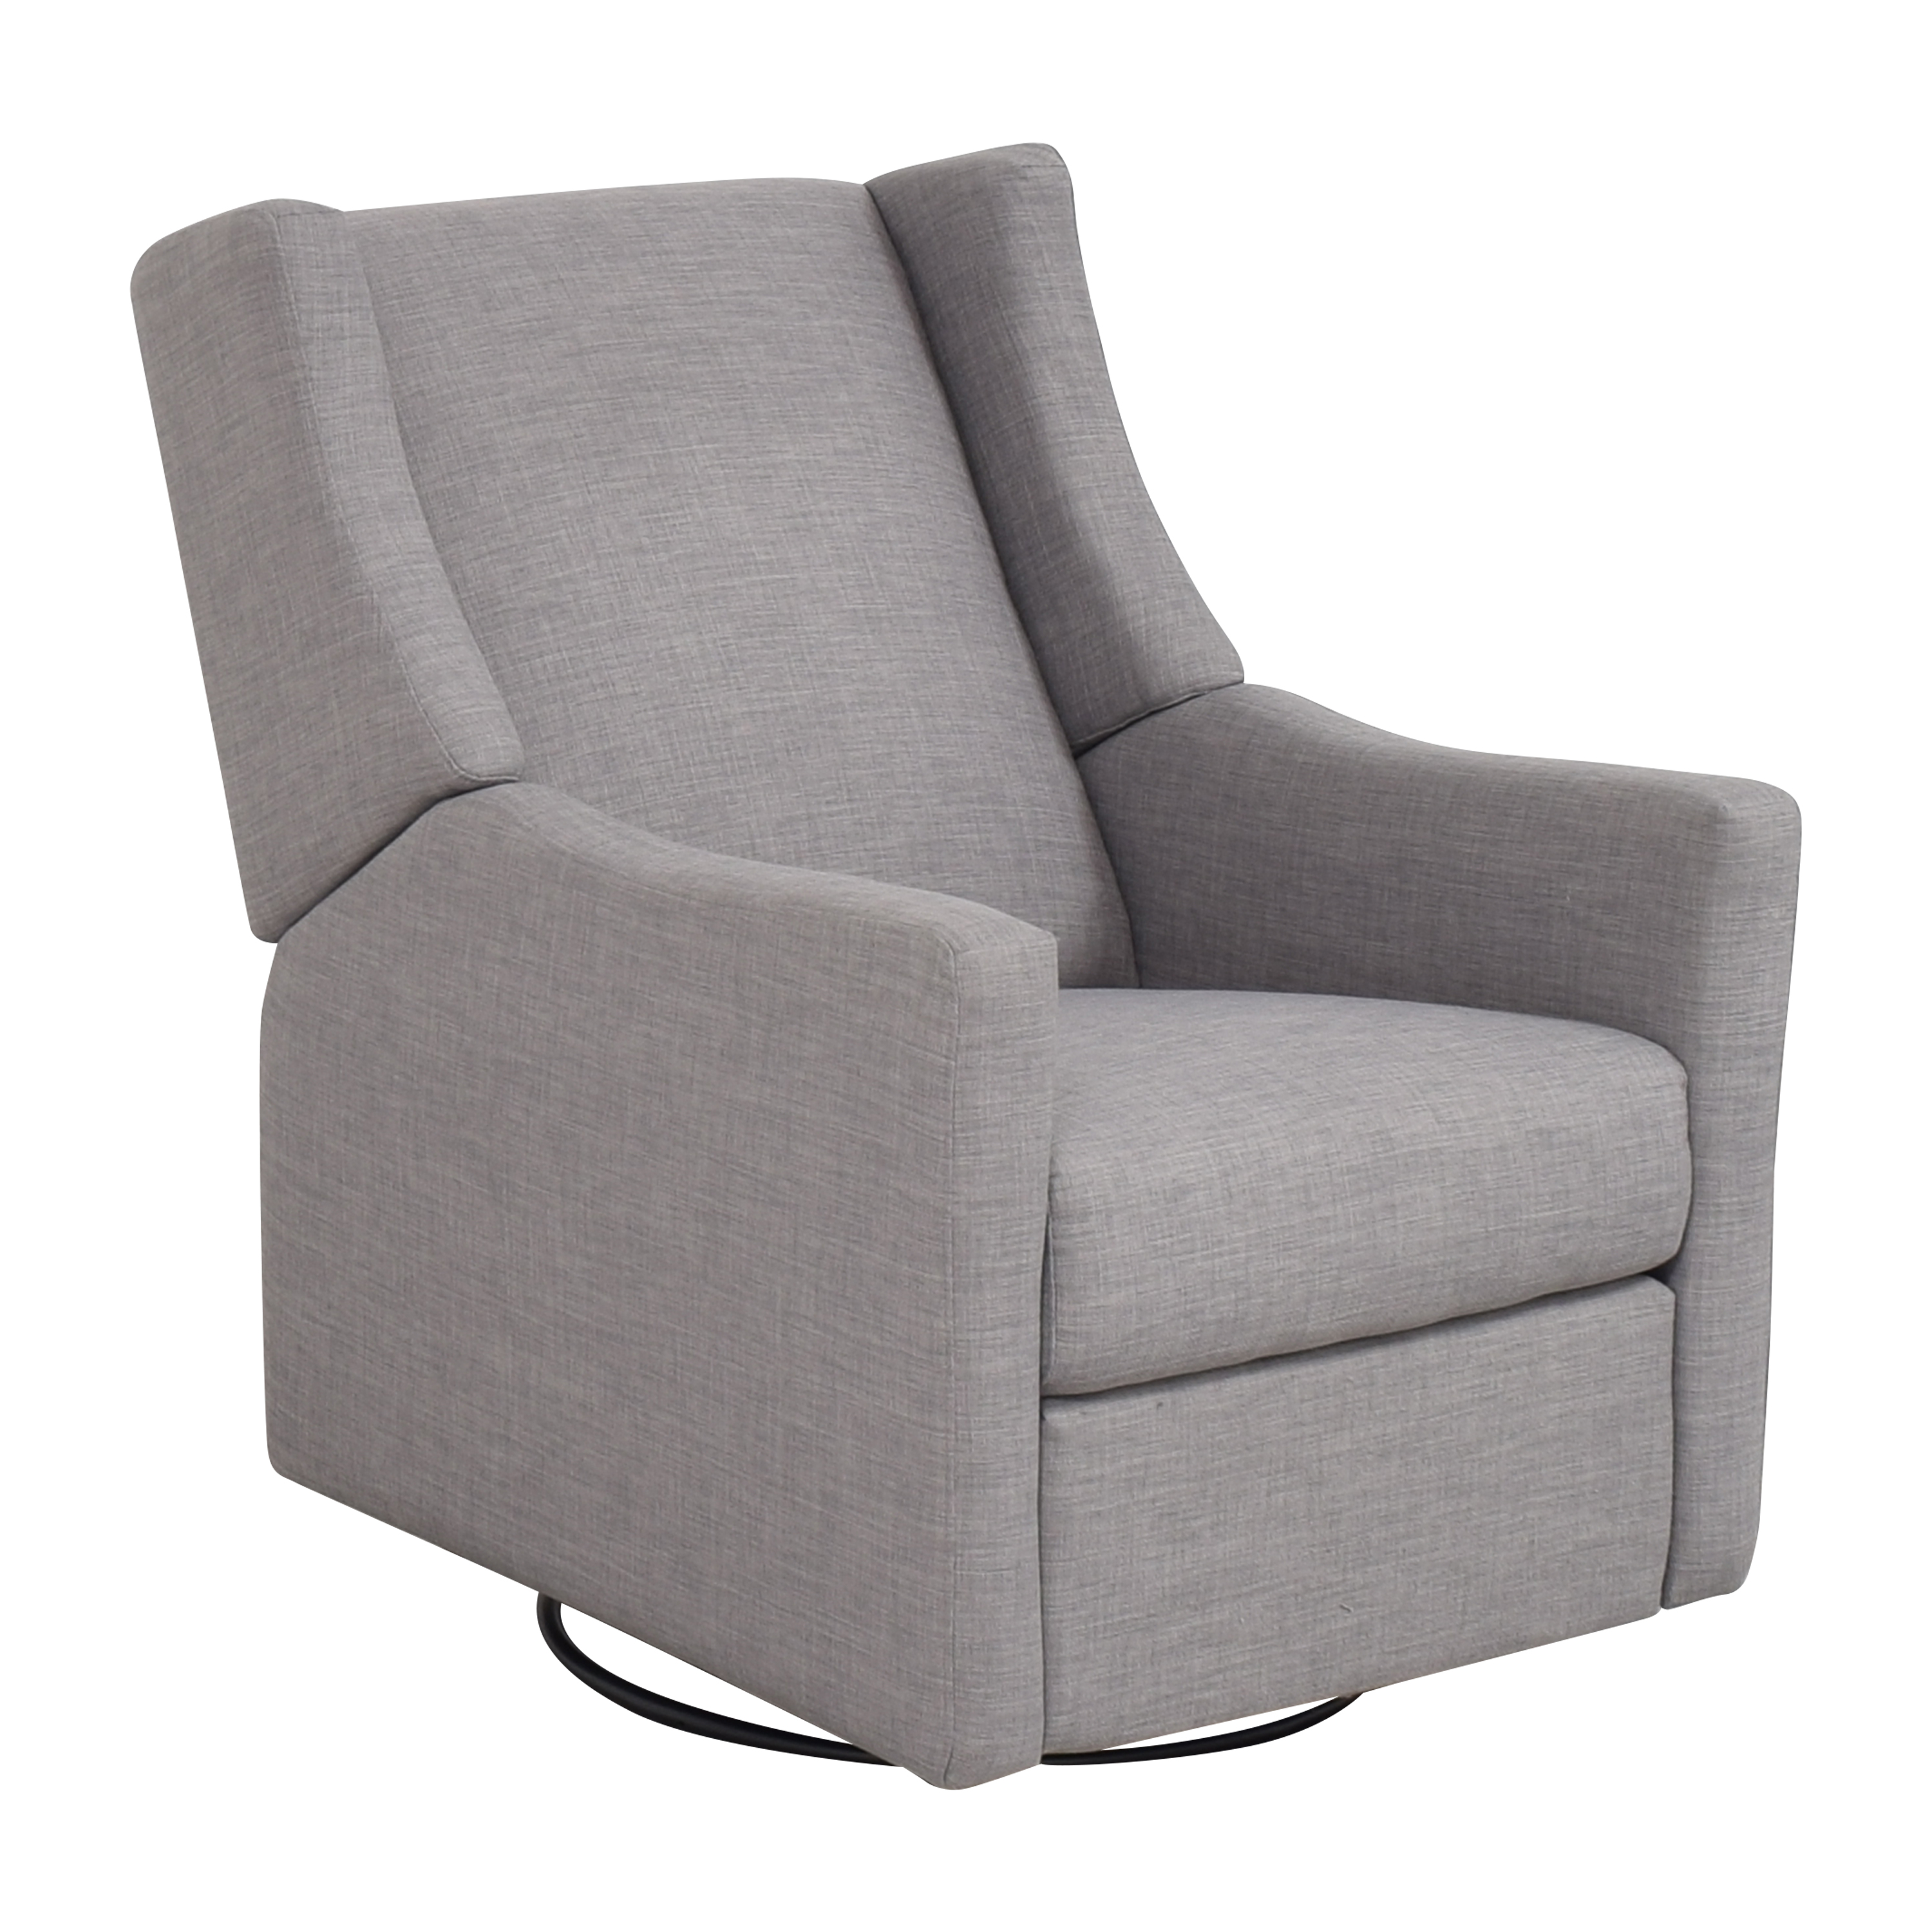 Sears Sears Power Recliner ct